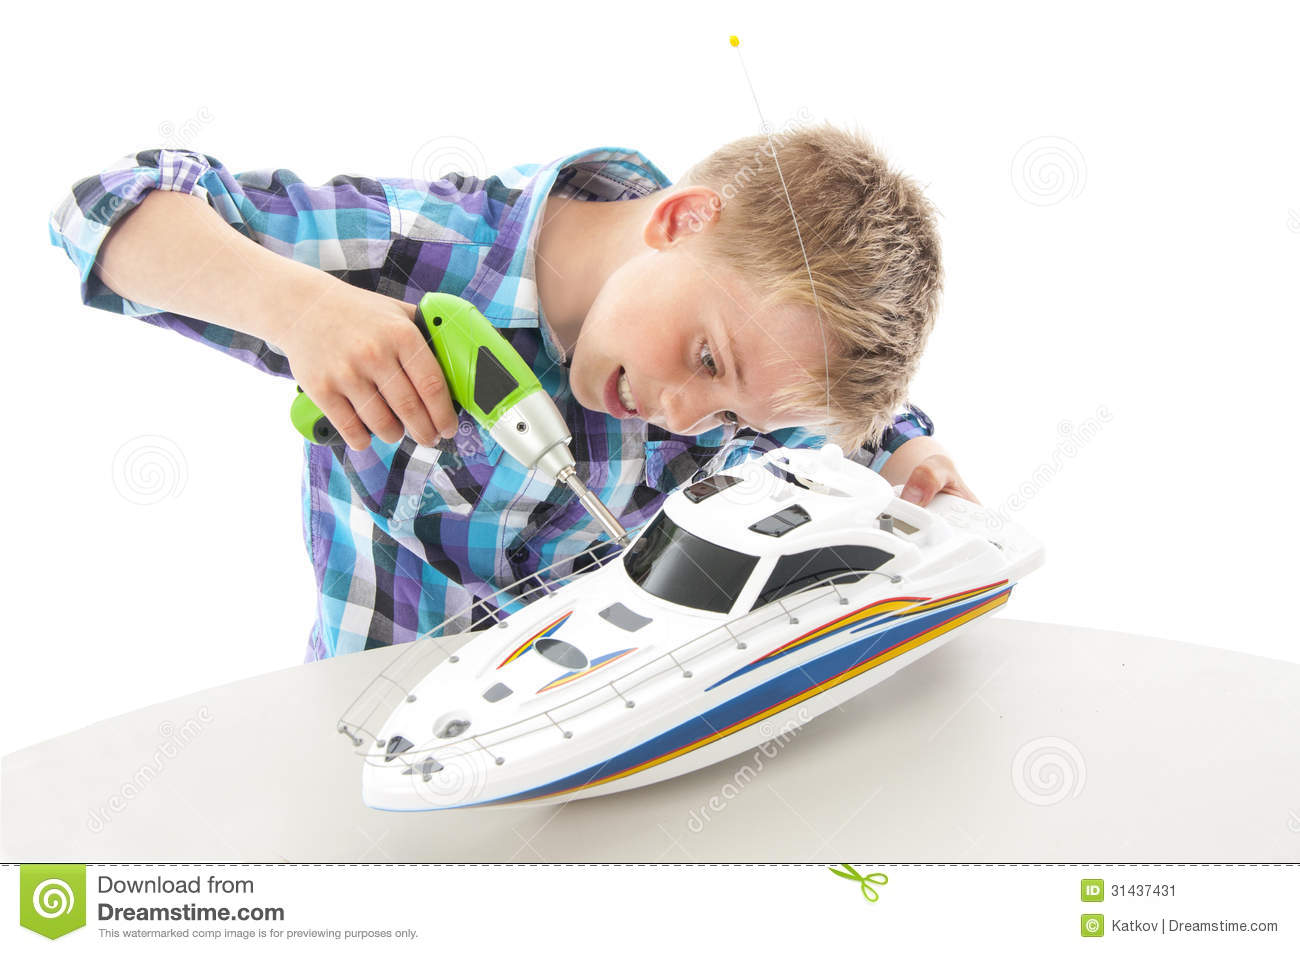 Lillle Boy Toys Boats : Little boy with toy boat stock image